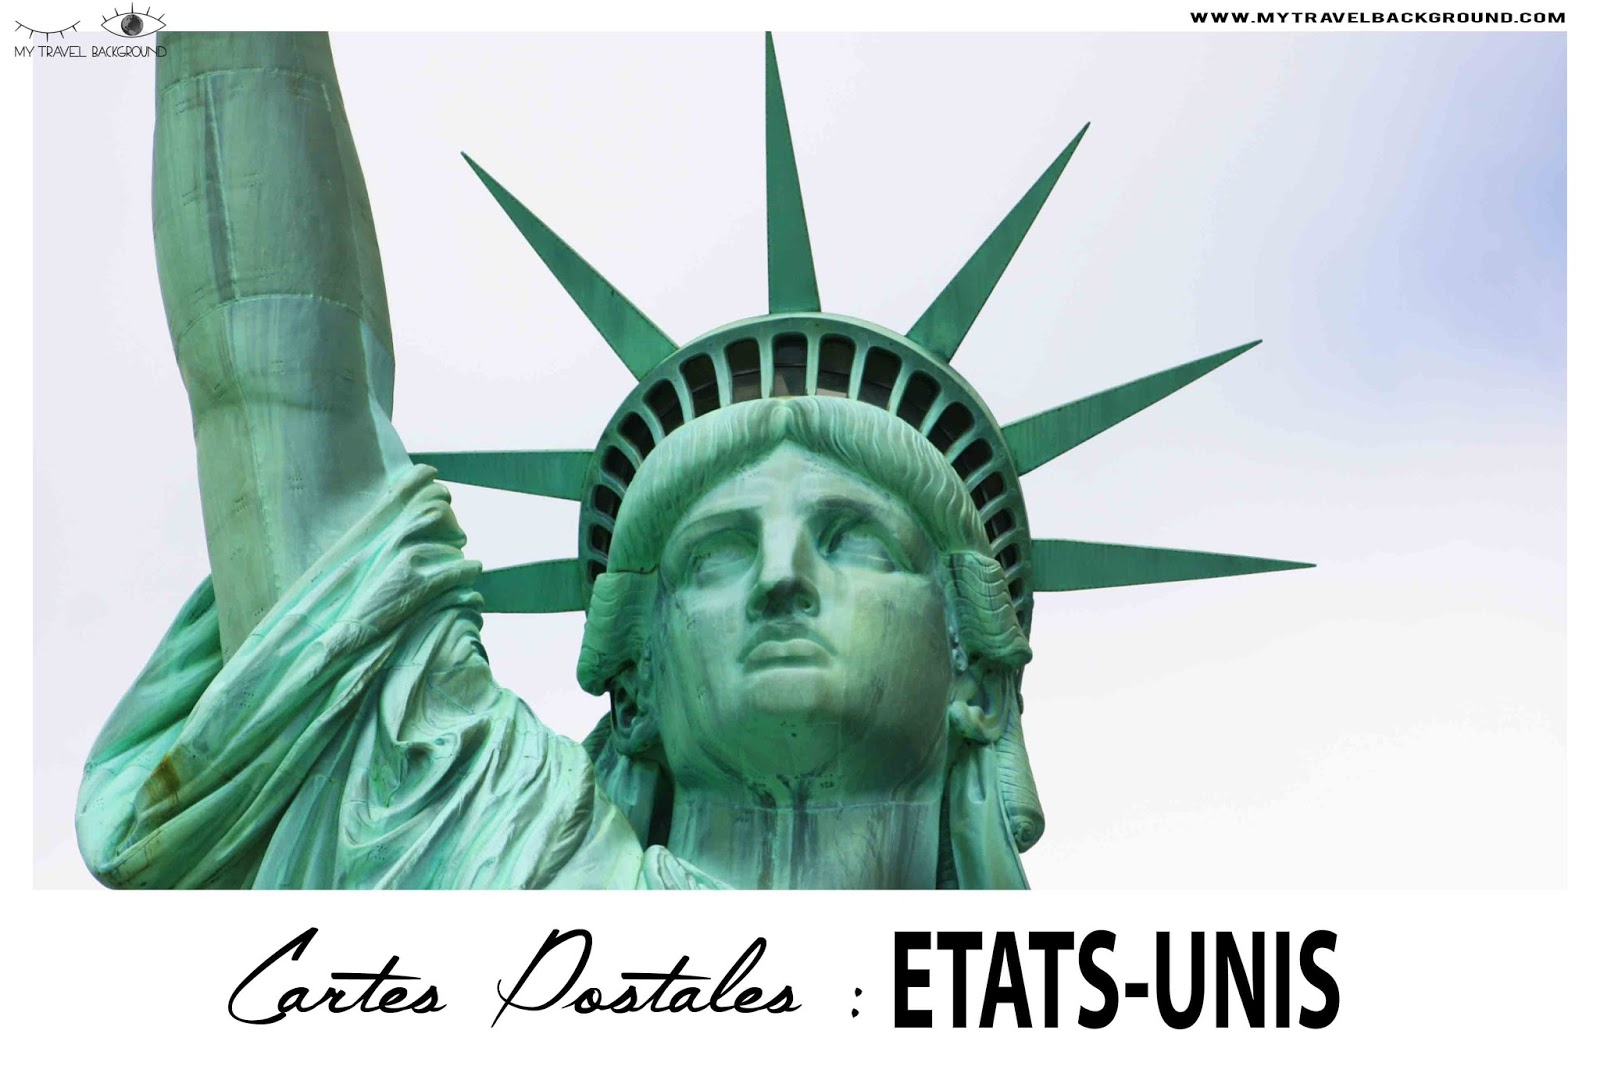 My Travel Background : Cartes Postale Etats-Unis